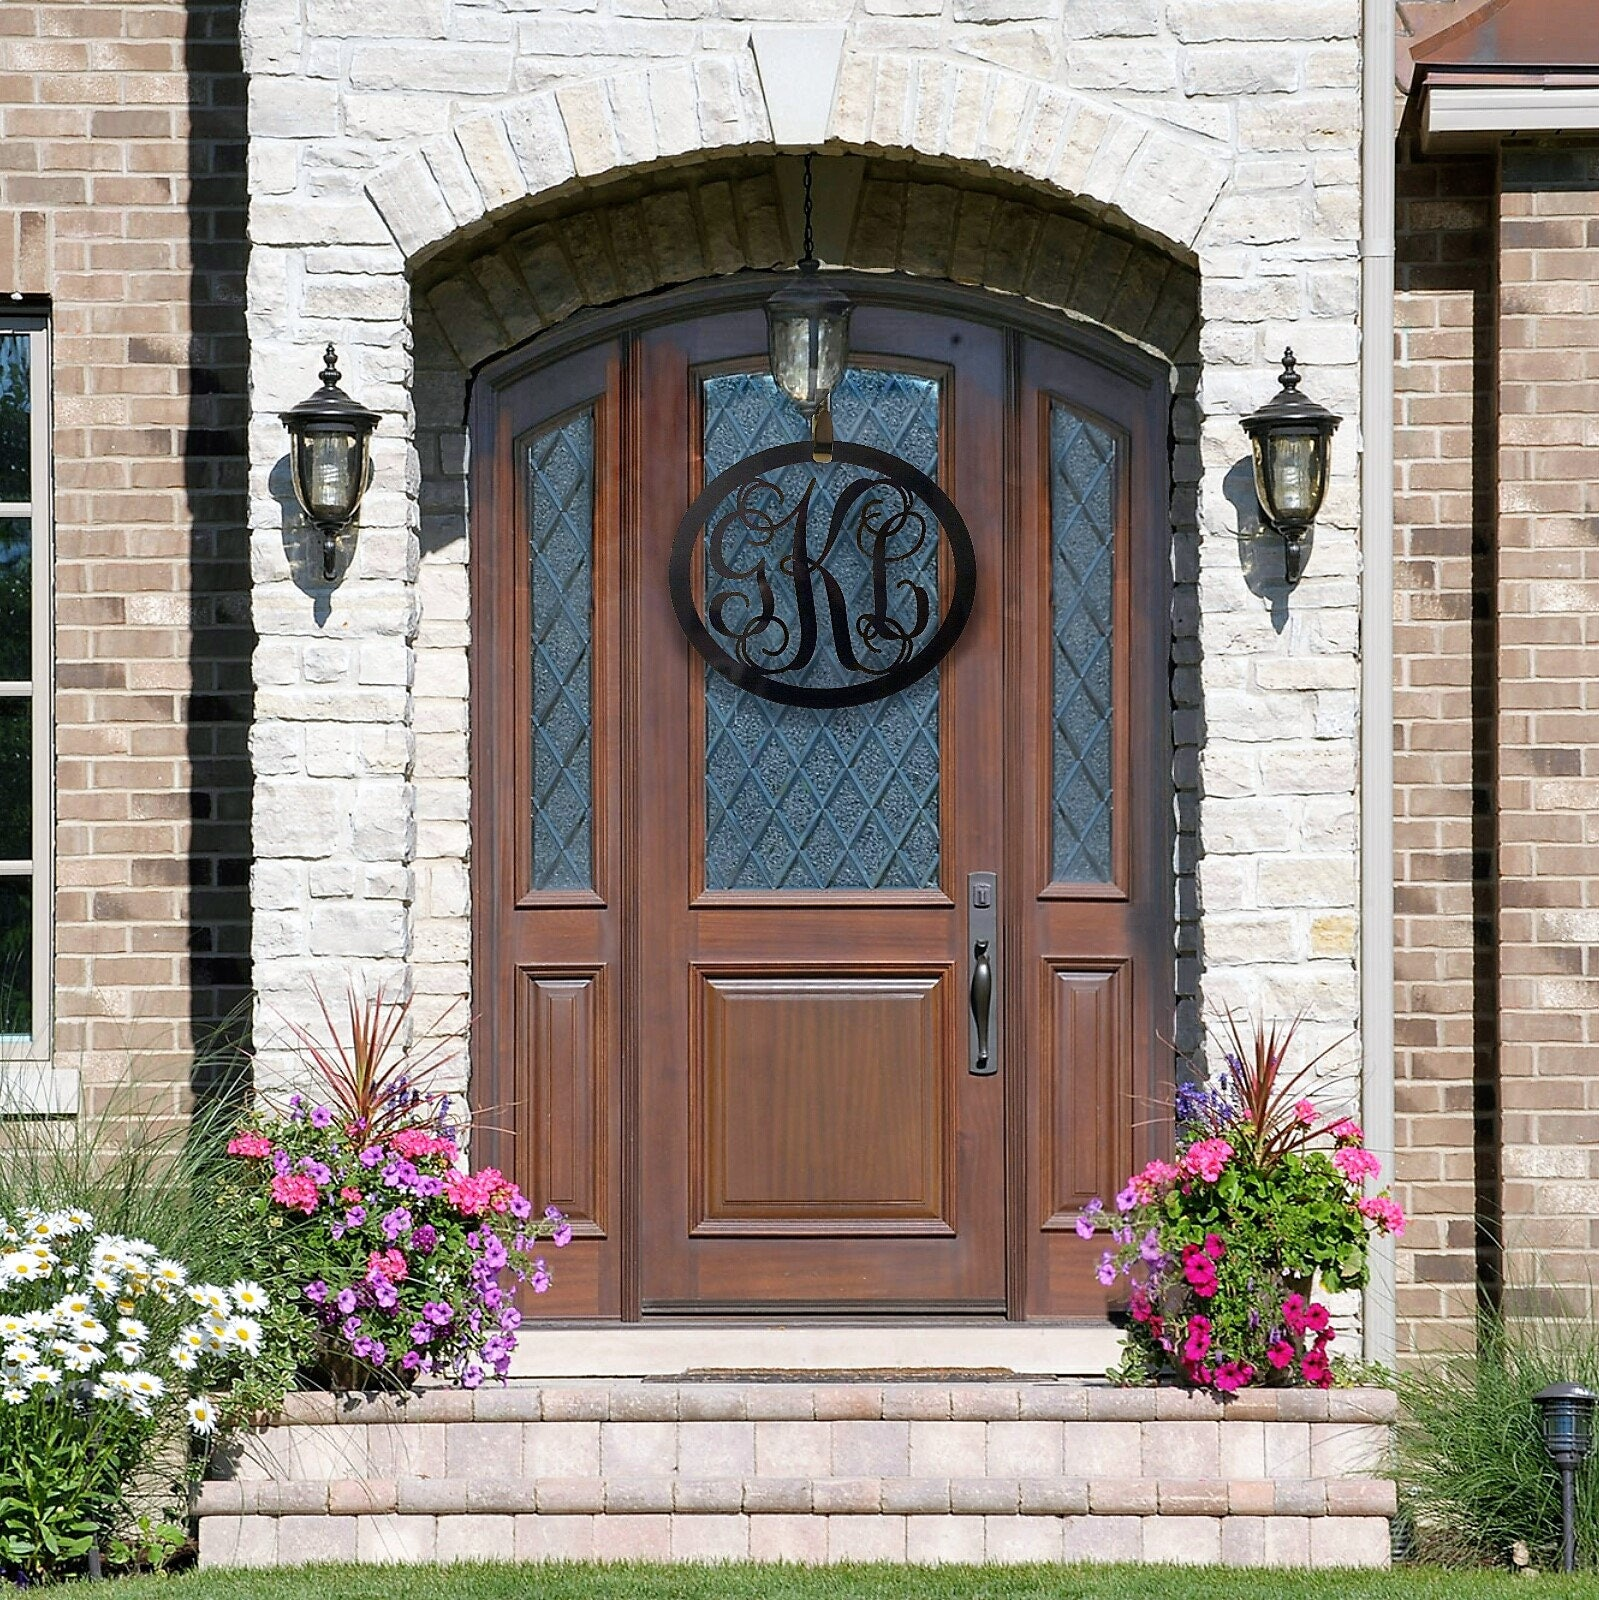 Monogram Front Door Decoration: 3 Initial Monogram , Monogram Door Hanger, Monogrammed